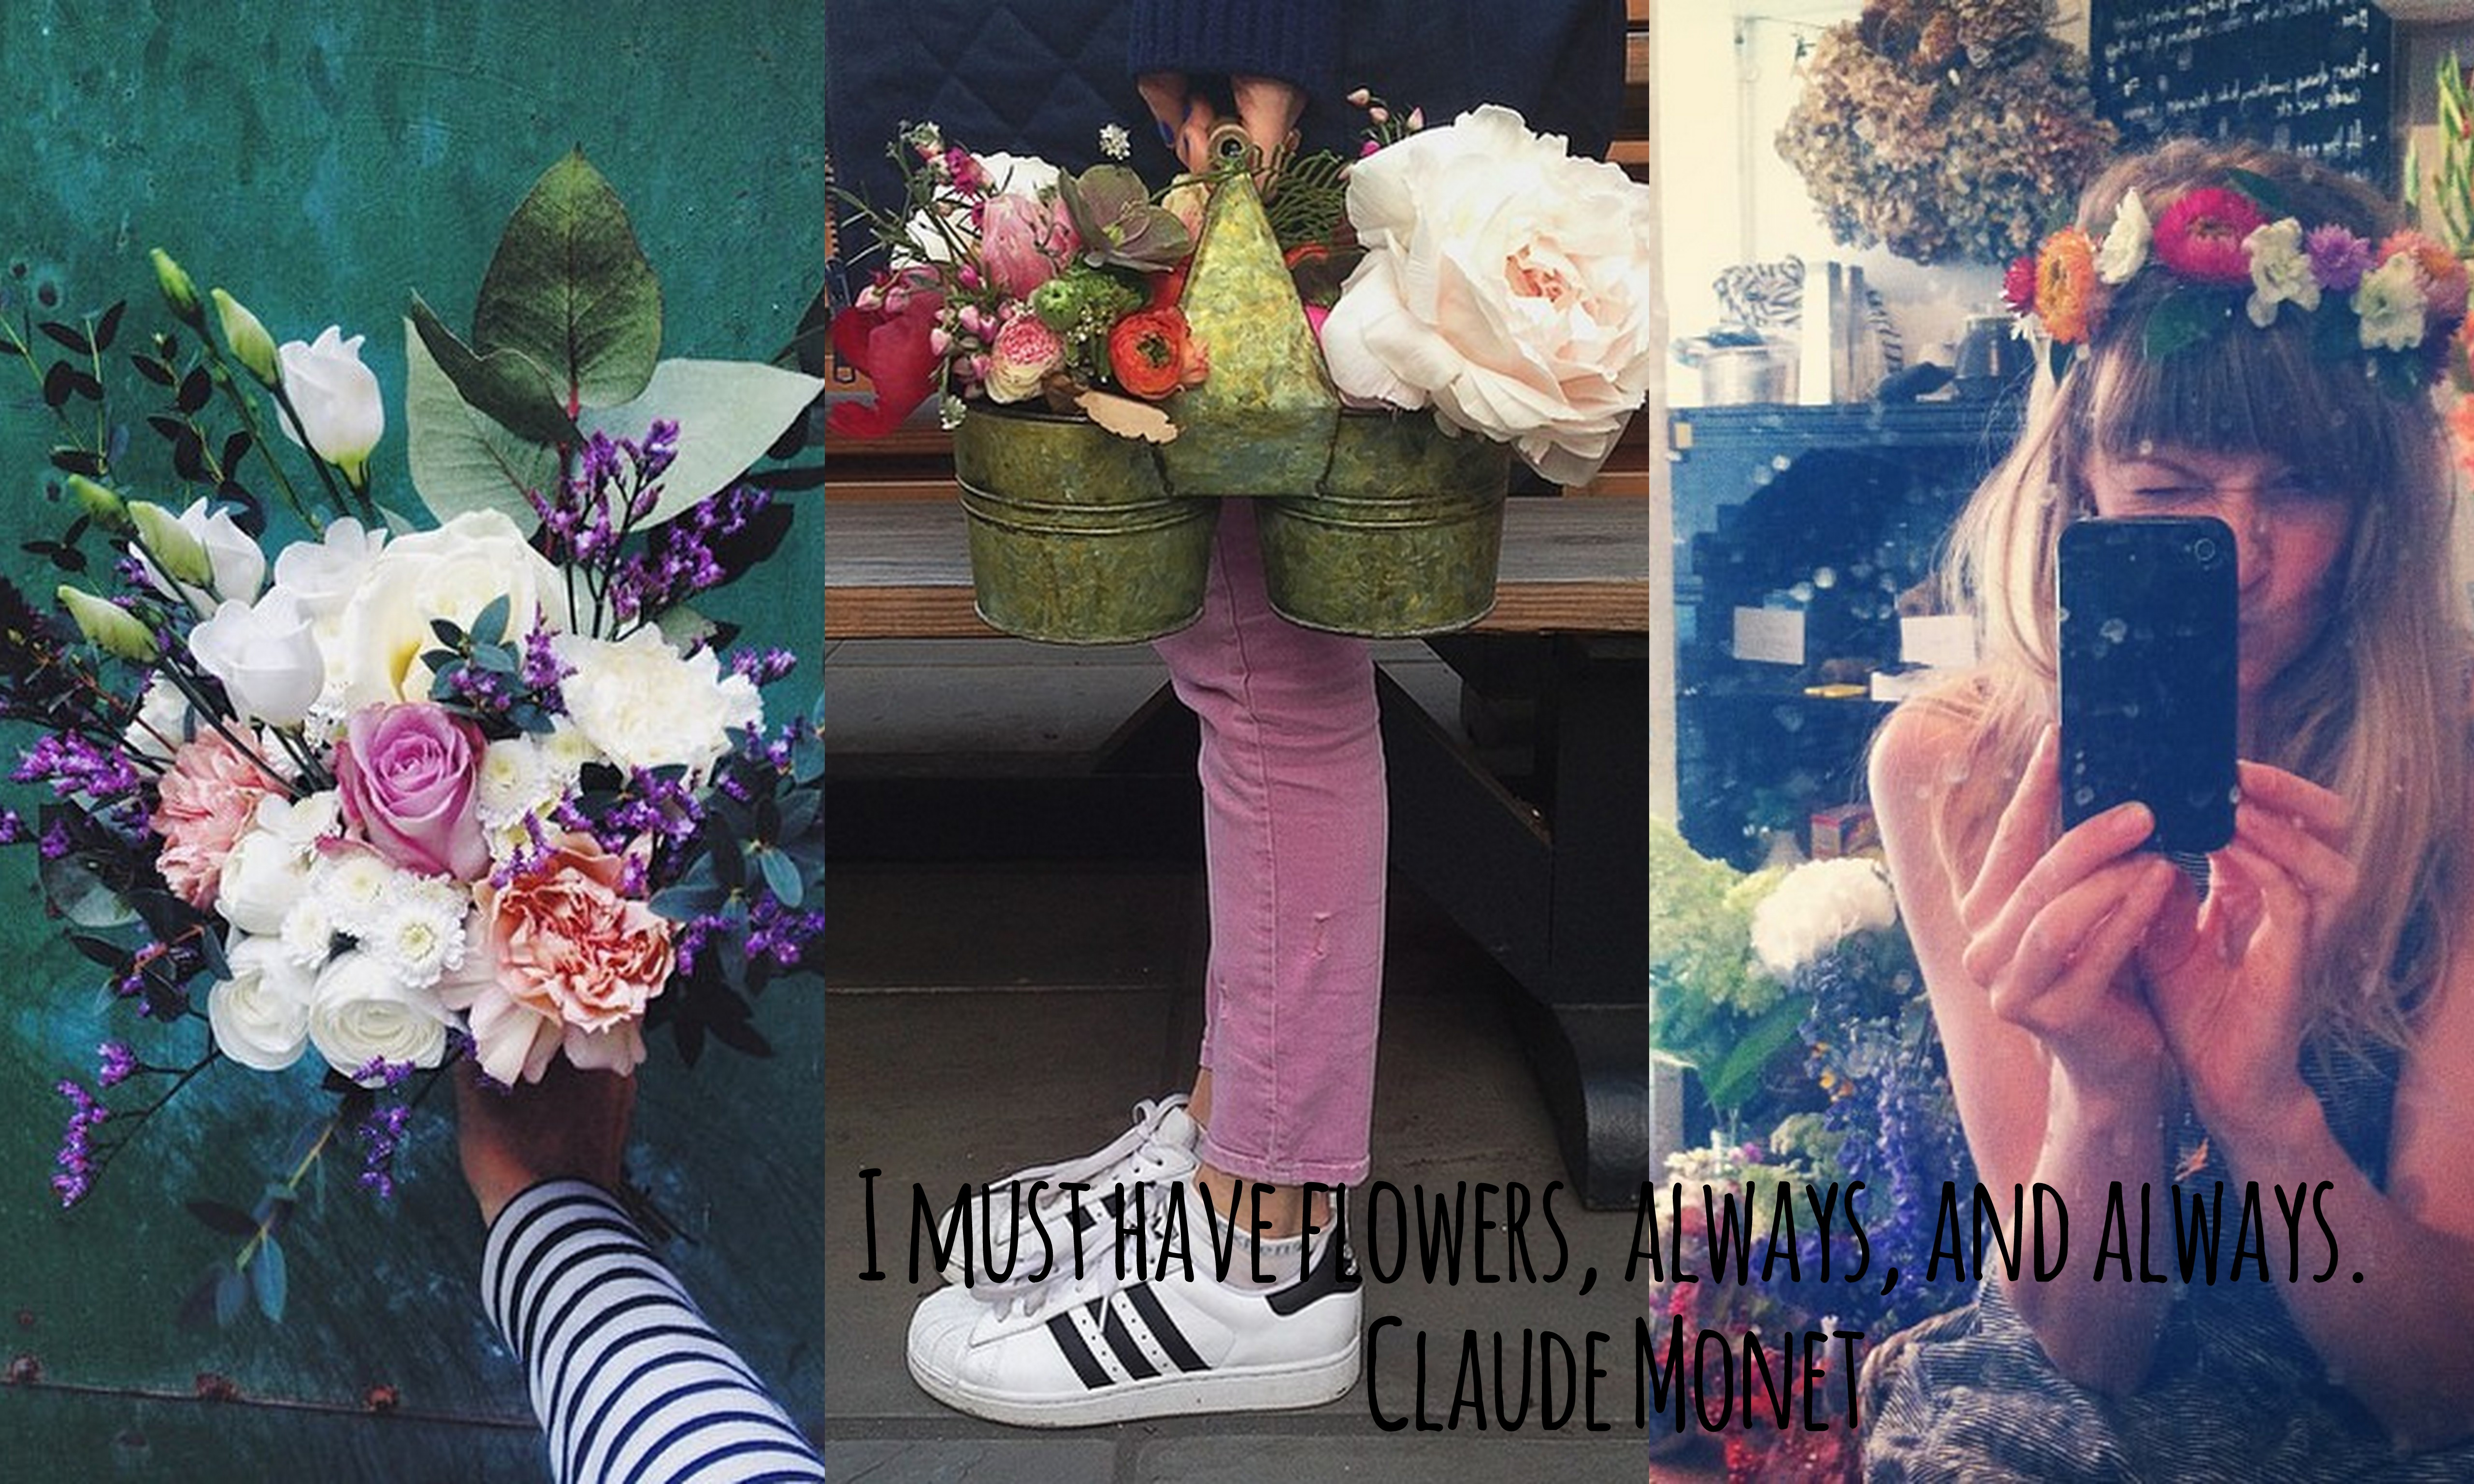 I must have flowers, always, and always – Claude Monet